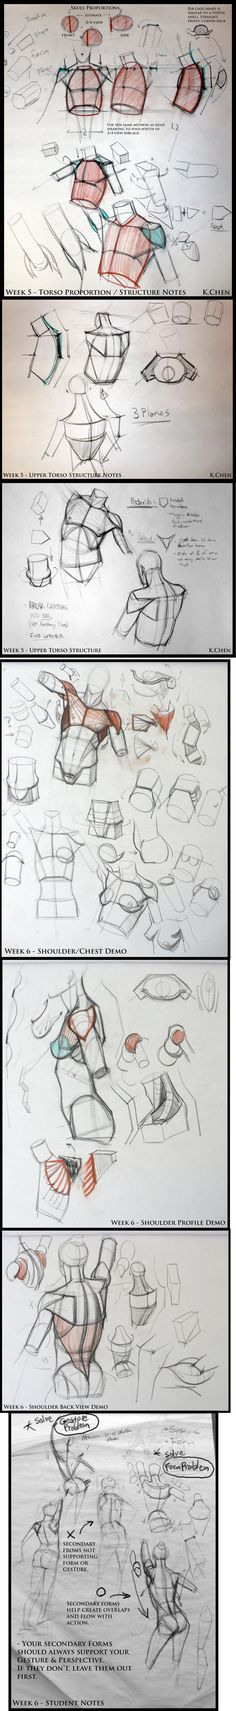 Upper torso / Shoulder & chest structure - analyticalfiguresp08.blogspot - Kevin Chen #analytical #drawing #figureDrawing #instructorDemo #structure